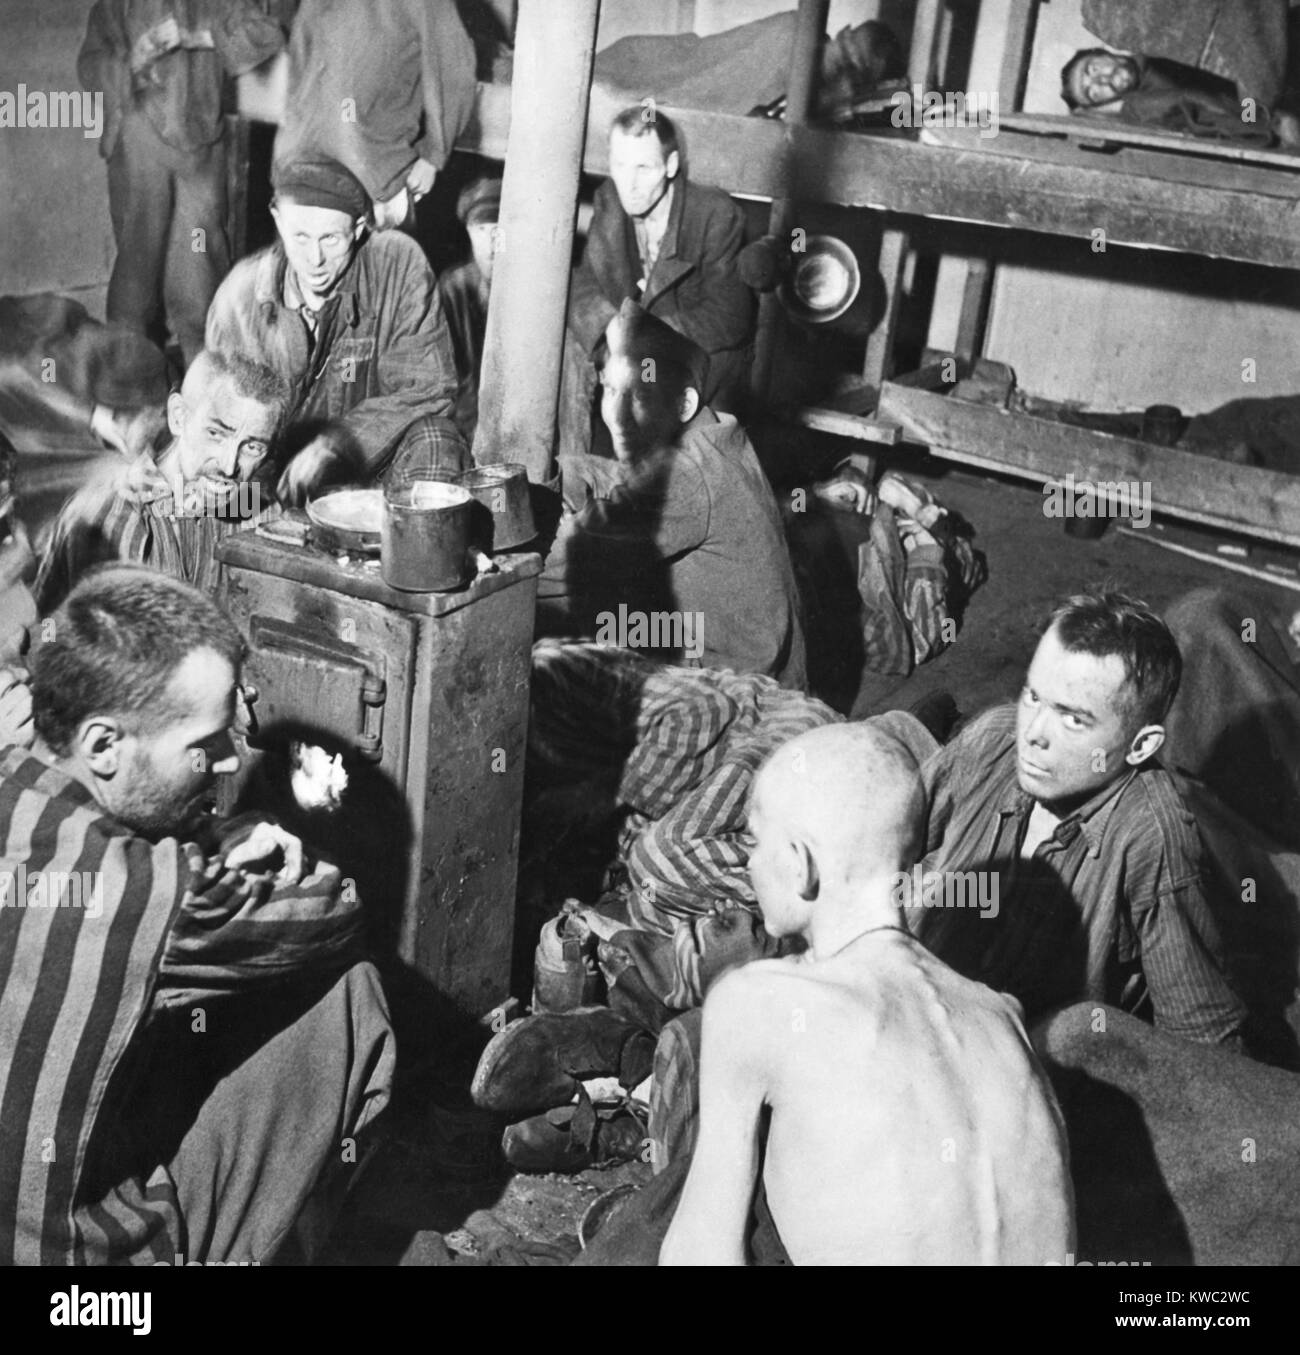 Sandbostel Prison camp survivors sit around a stove fire after British Liberation, April 30, 1945. They were among - Stock Image